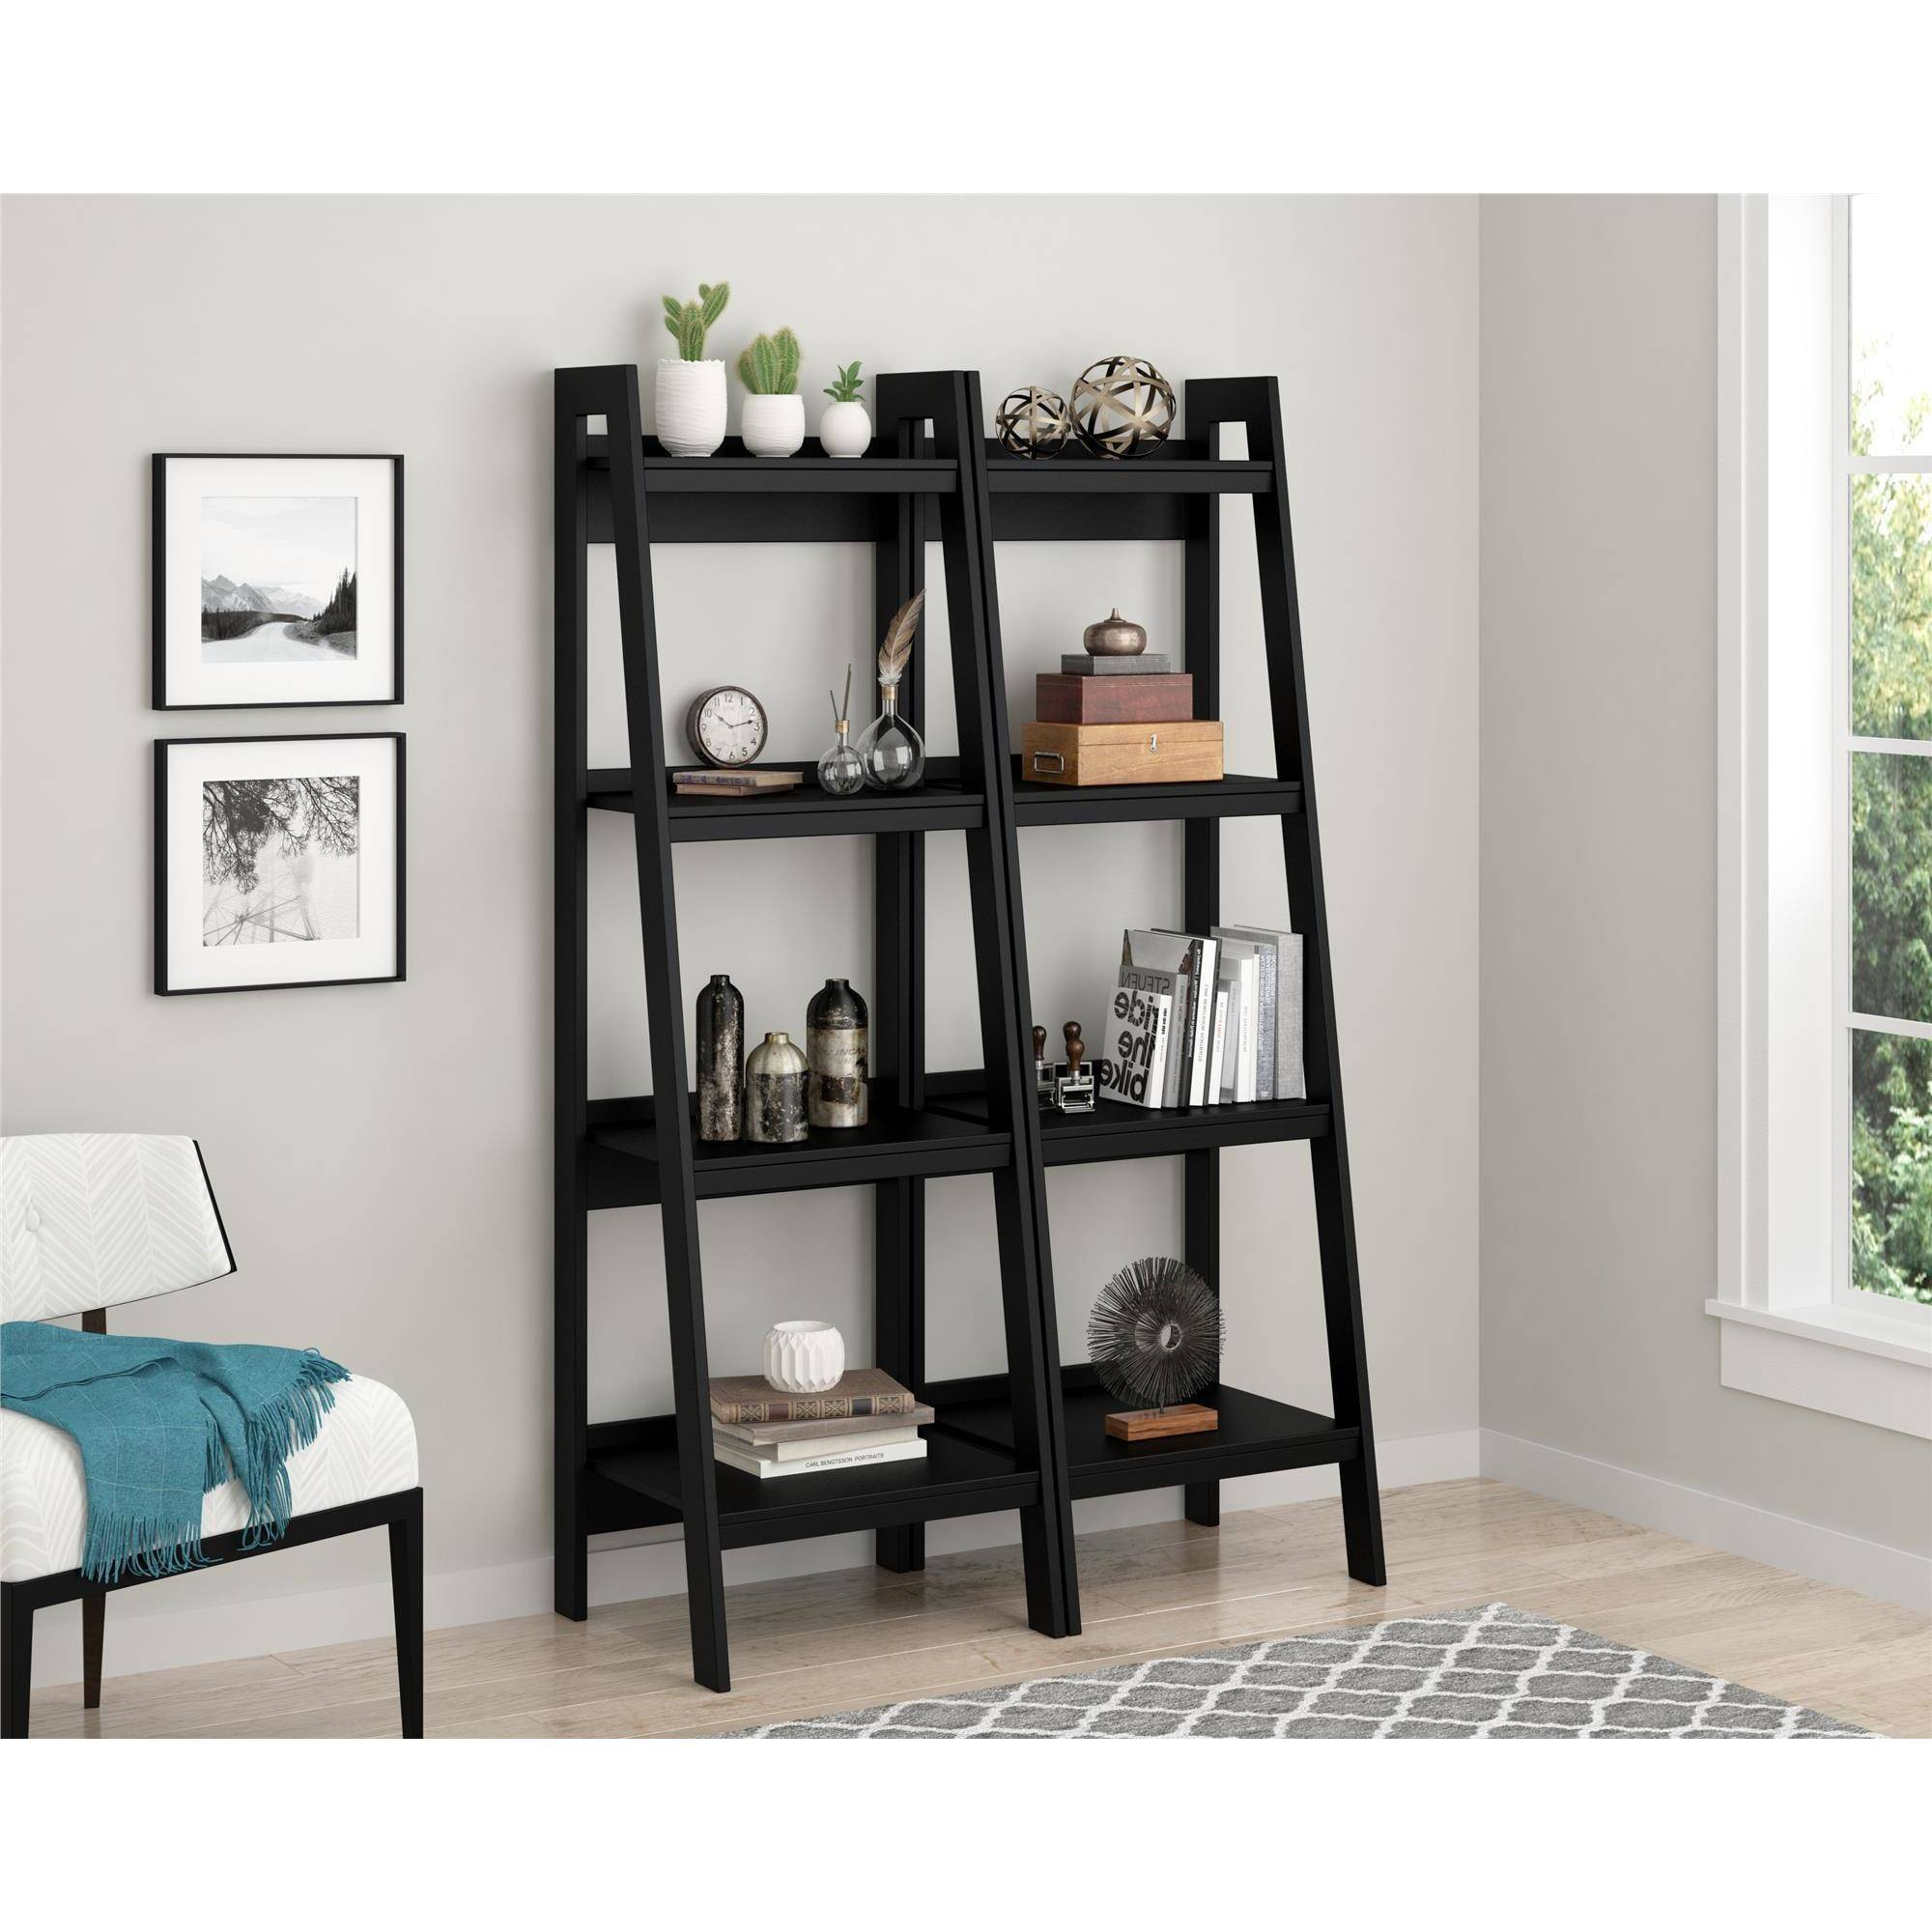 Ameriwood Home Lawrence 4 Shelf Ladder Bookcase Bundle, Black (Set of 2)